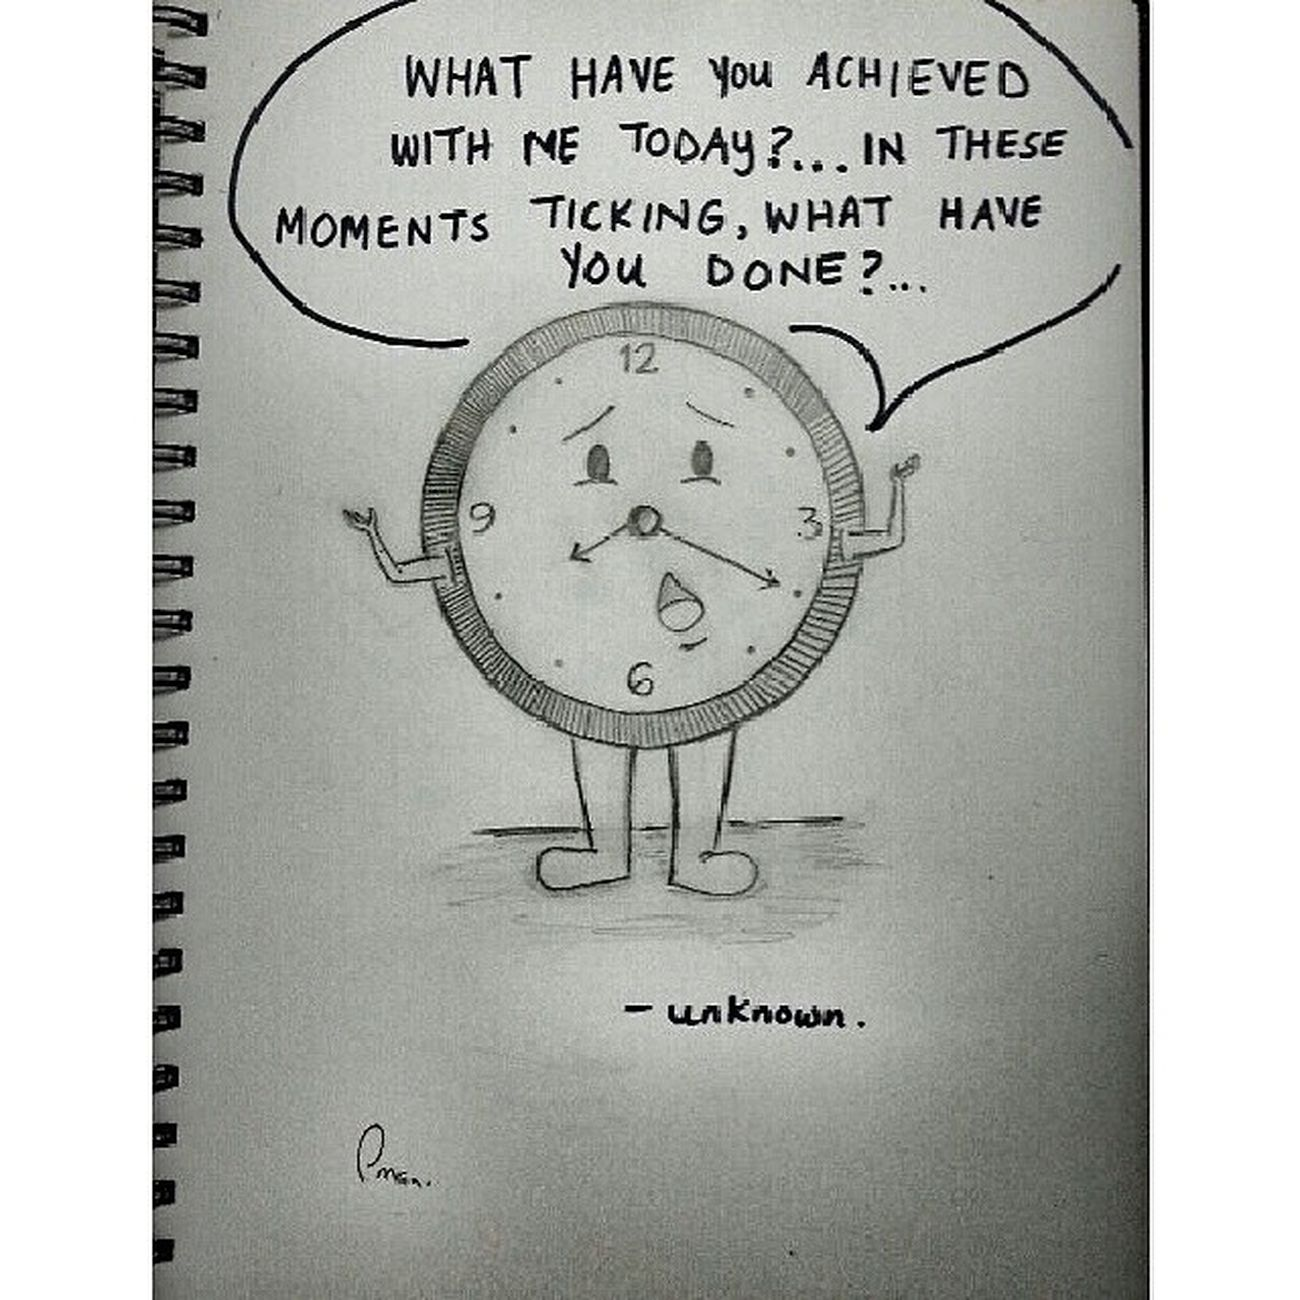 ⌚Time Life Ticking Movingfast sketchbyimanartreminderimportantquote